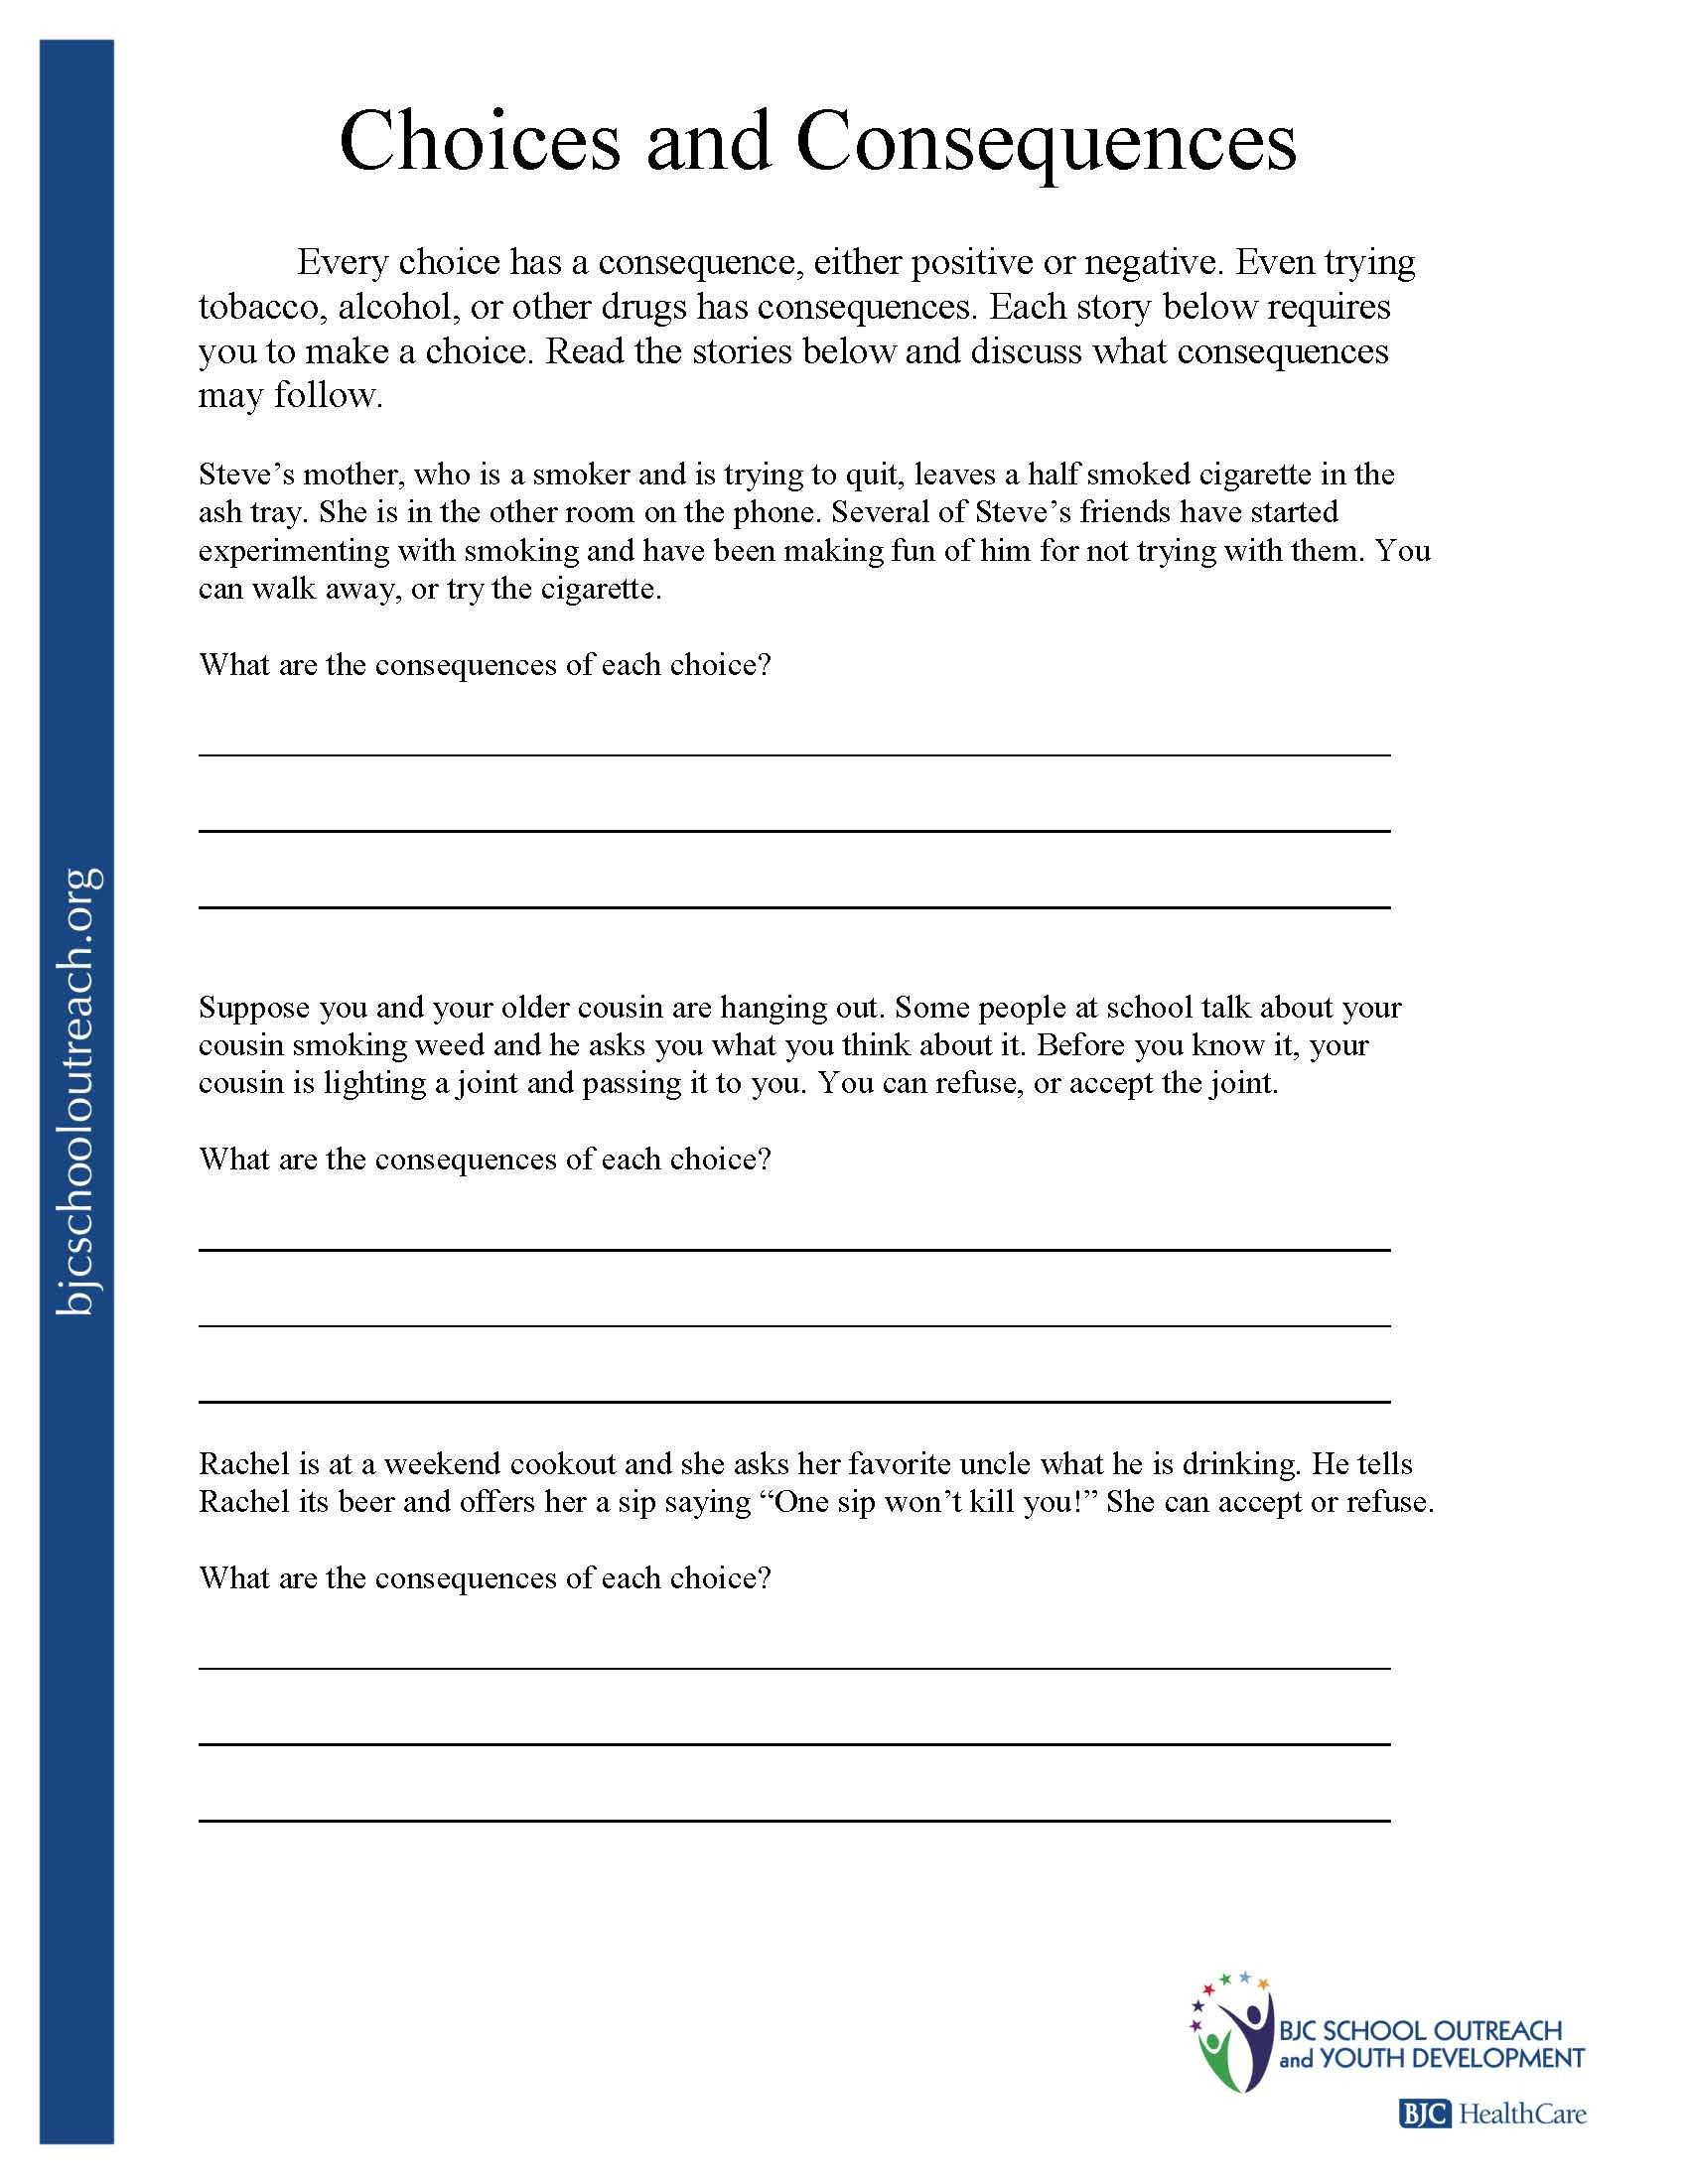 Making Good Choices Worksheets